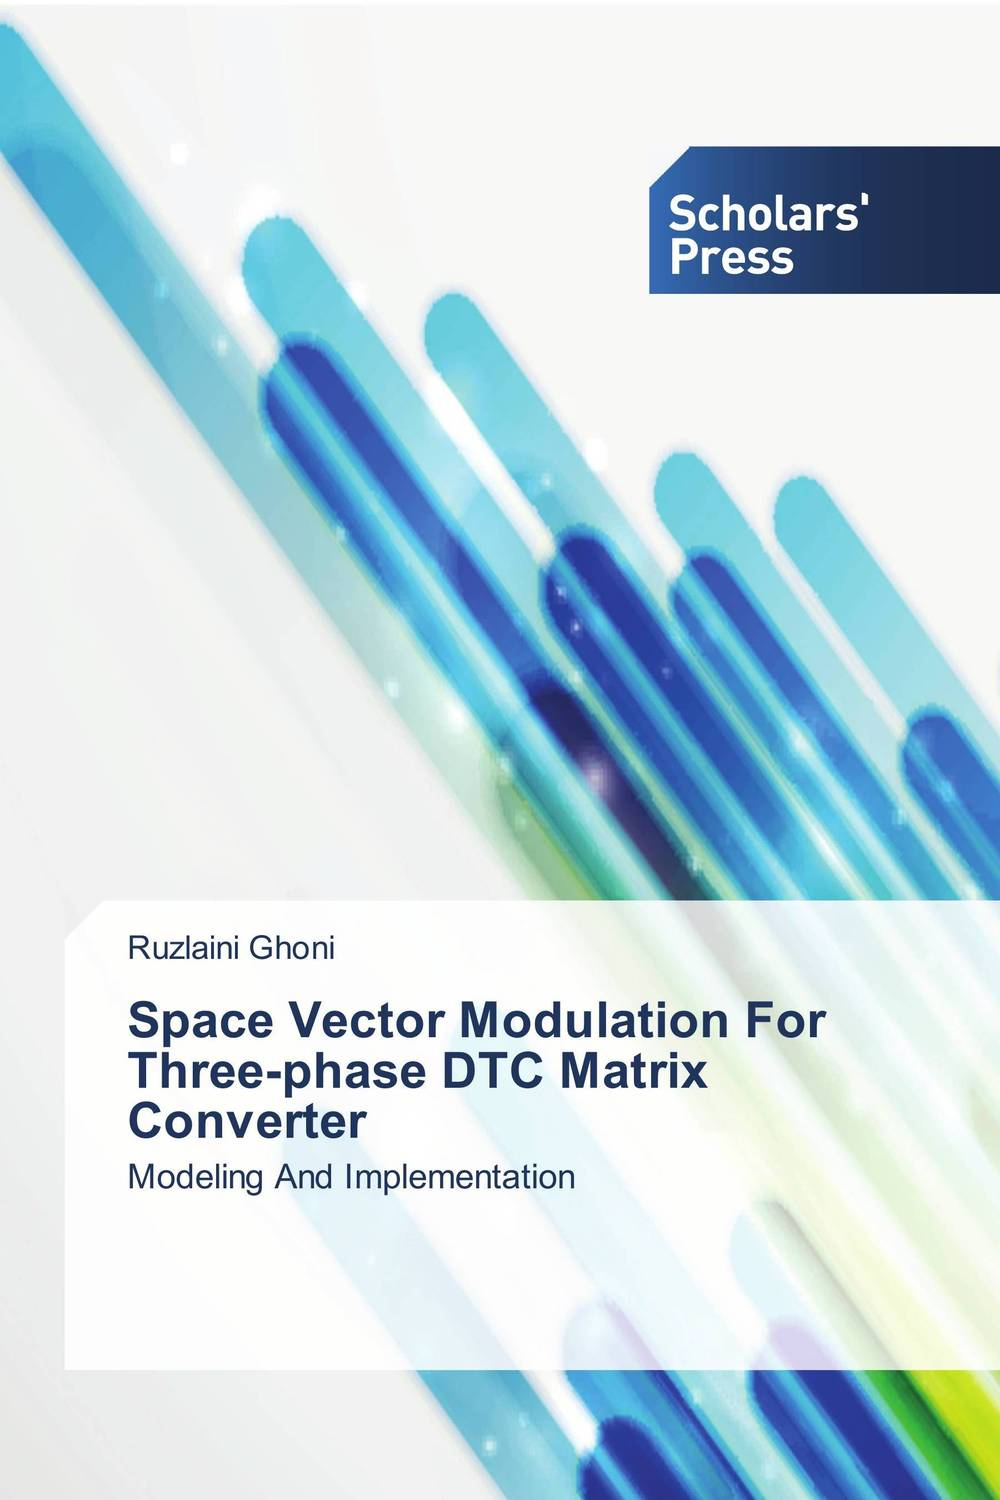 Space Vector Modulation For Three-phase DTC Matrix Converter vfd110cp43b 21 delta vfd cp2000 vfd inverter frequency converter 11kw 15hp 3ph ac380 480v 600hz fan and water pump